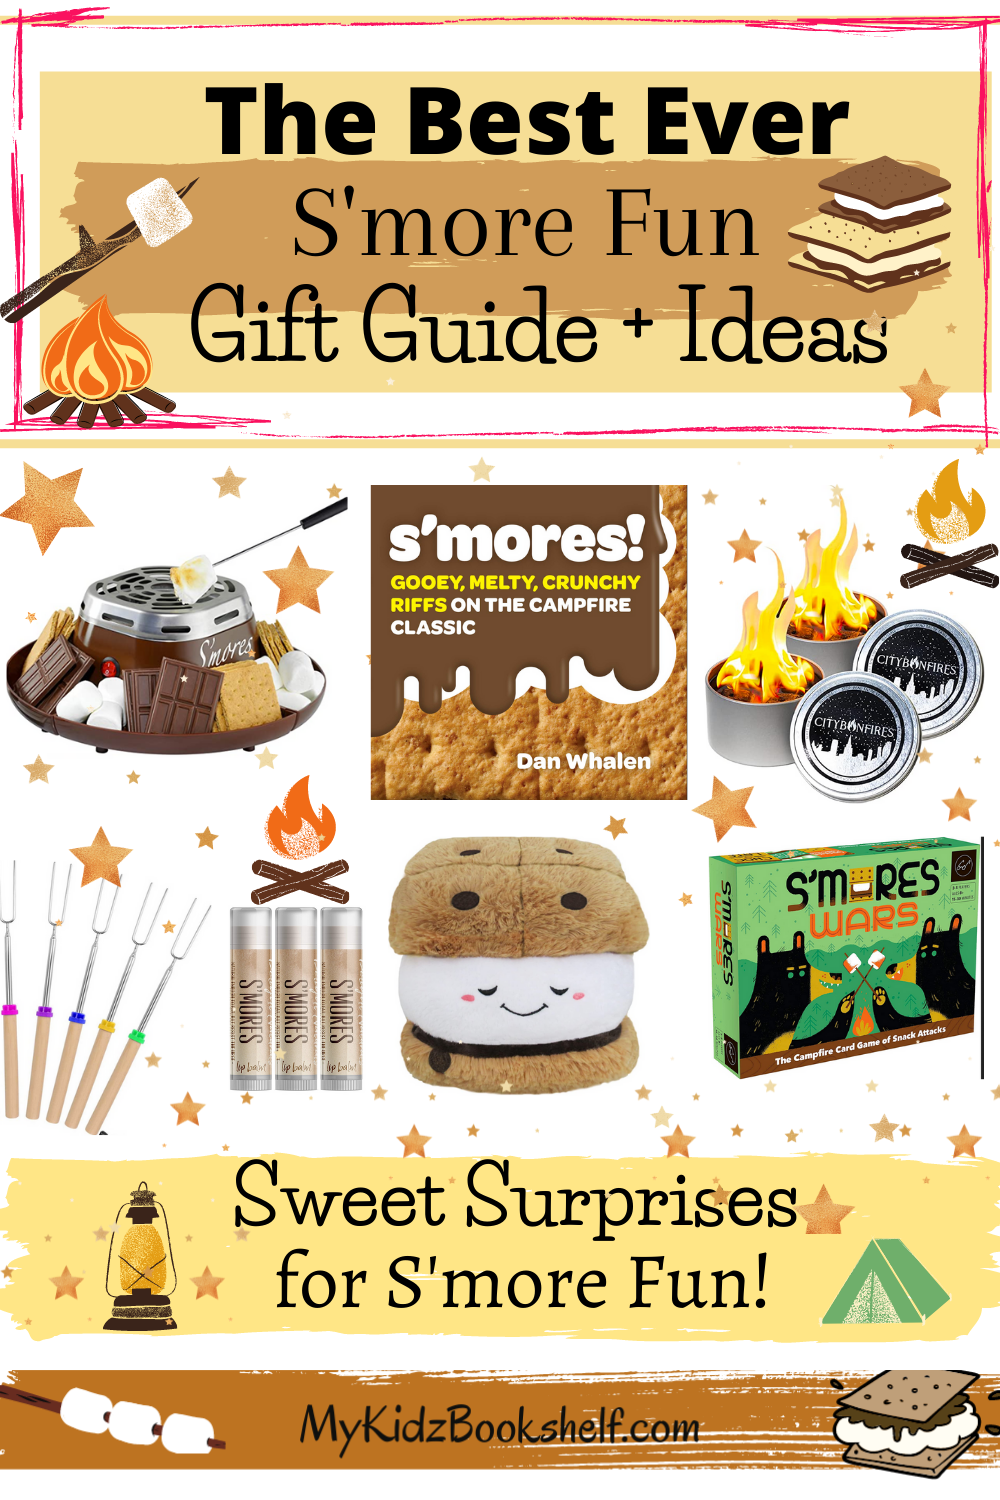 The Best Ever S'more Fun Gift Guide and Ideas